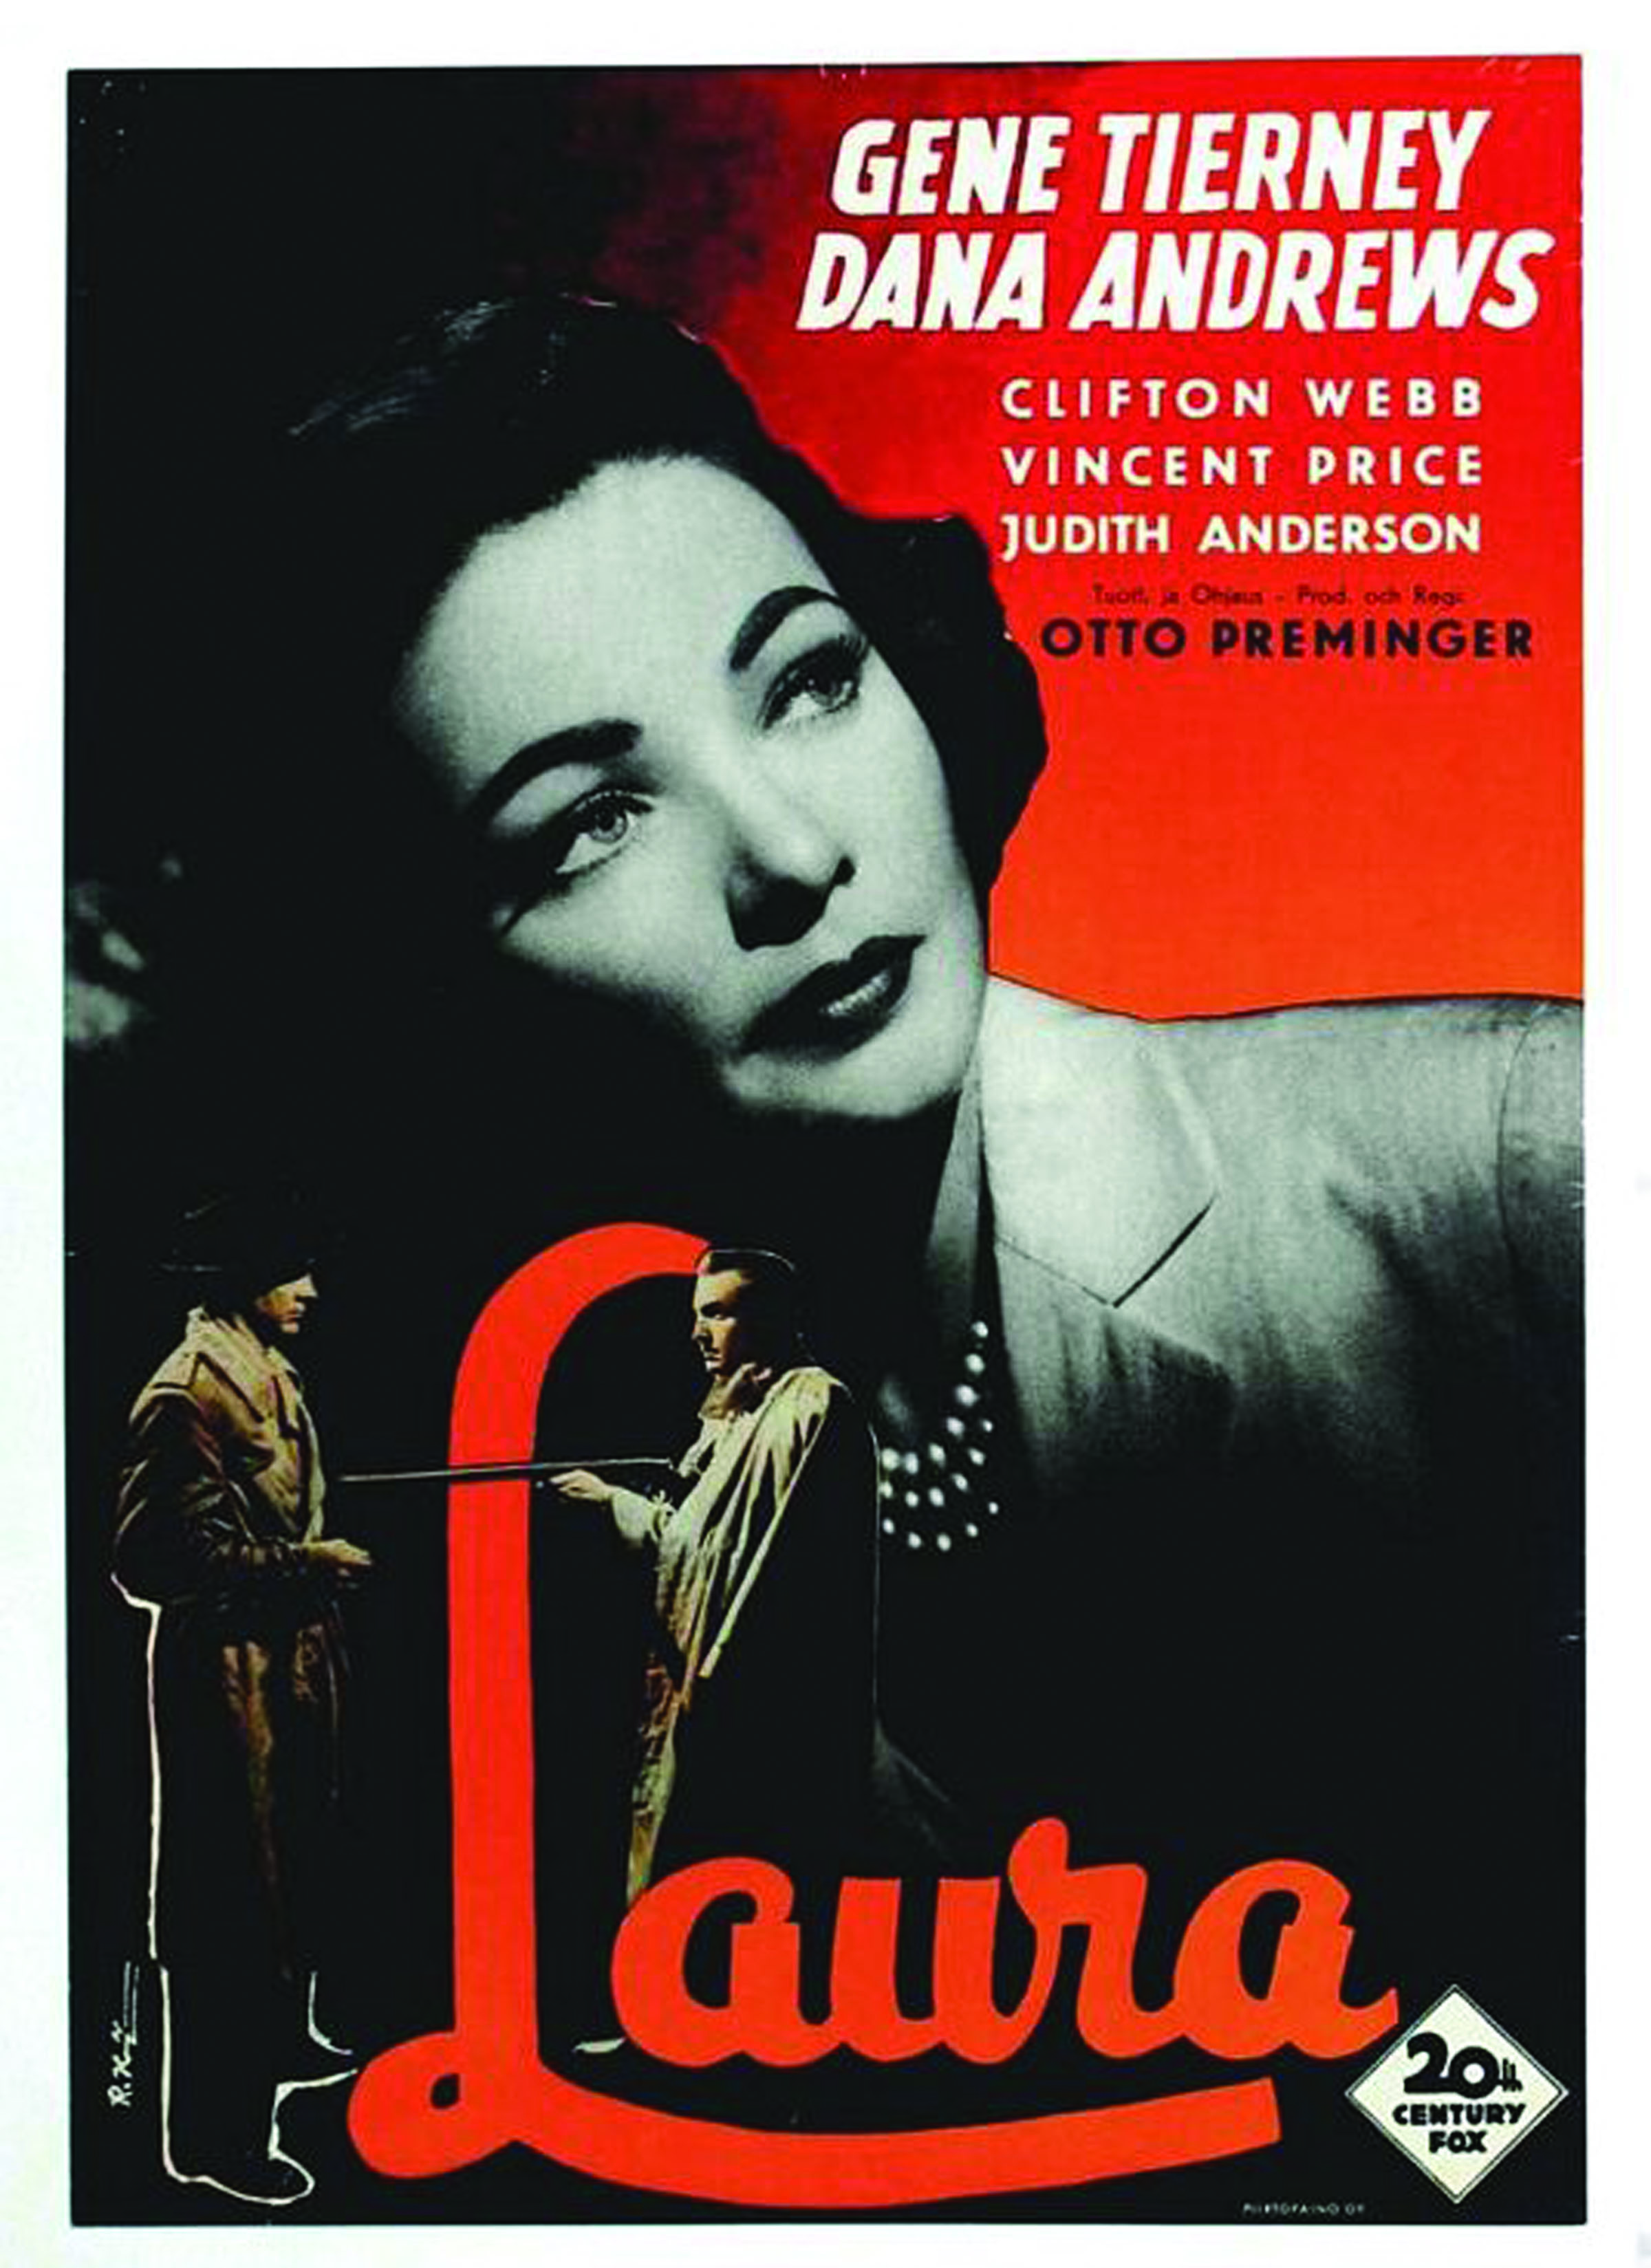 Laura, the sixth presentation in Ogunquit Performing Arts' 16th Annual Classic Film Series, will be shown at 2 p.m. Sunday April 2 at the Dunaway Center, 23 School St. in Ogunquit. Admission is free and there is plenty of free parking. Free popcorn, too. SUBMITTED PHOTO